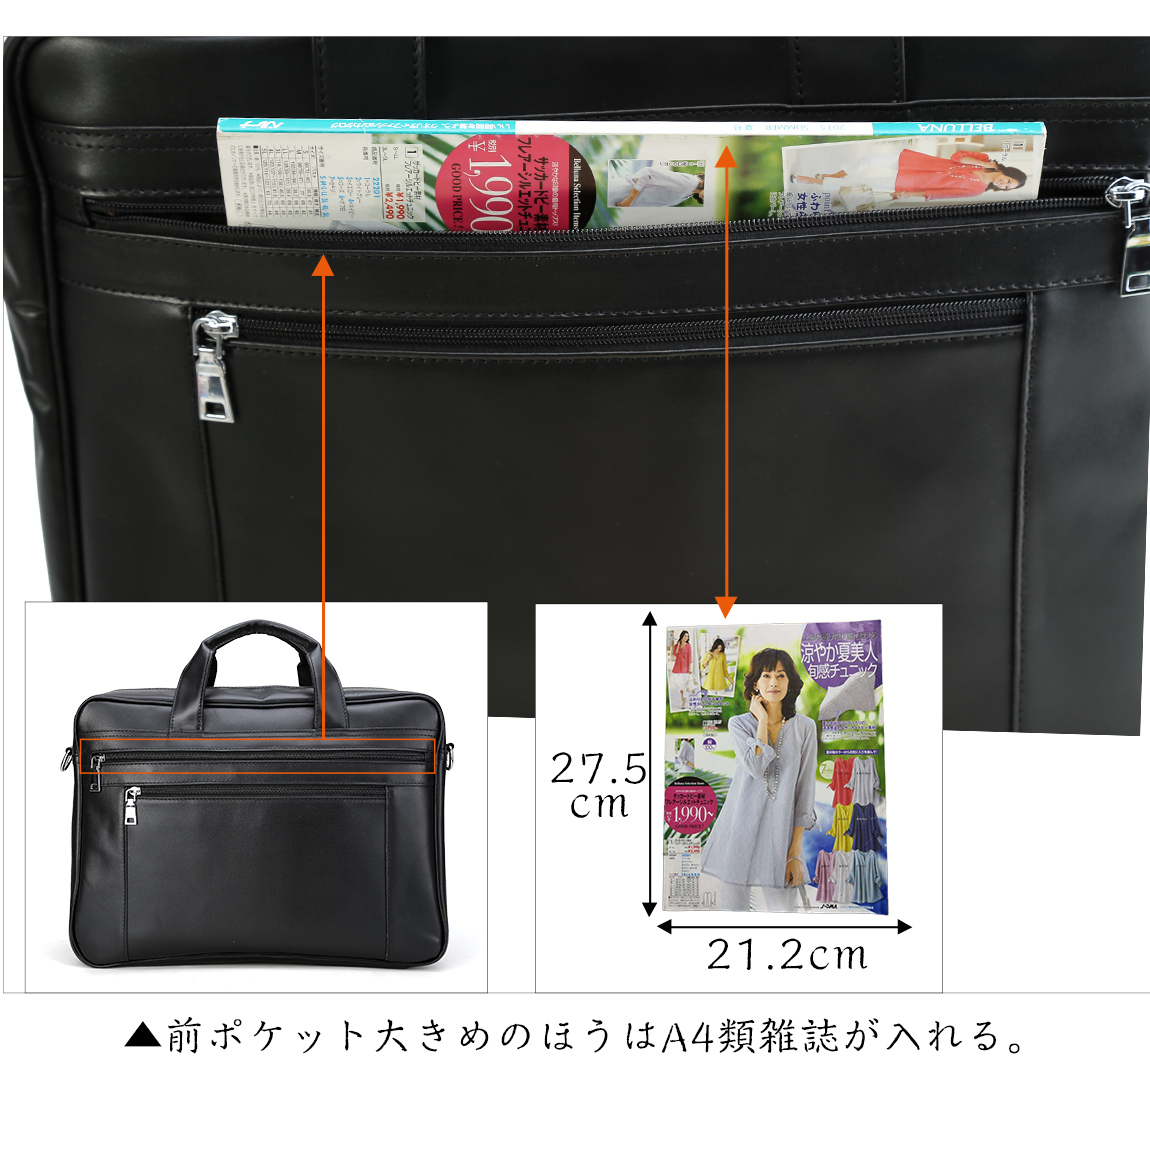 17 inches of TIDING B4 super large-capacity genuine leather  ビジネスバッグメンズブリーフケースナッパレザー luxury calfskin PC-adaptive 2WAY commuting business  trip bag new